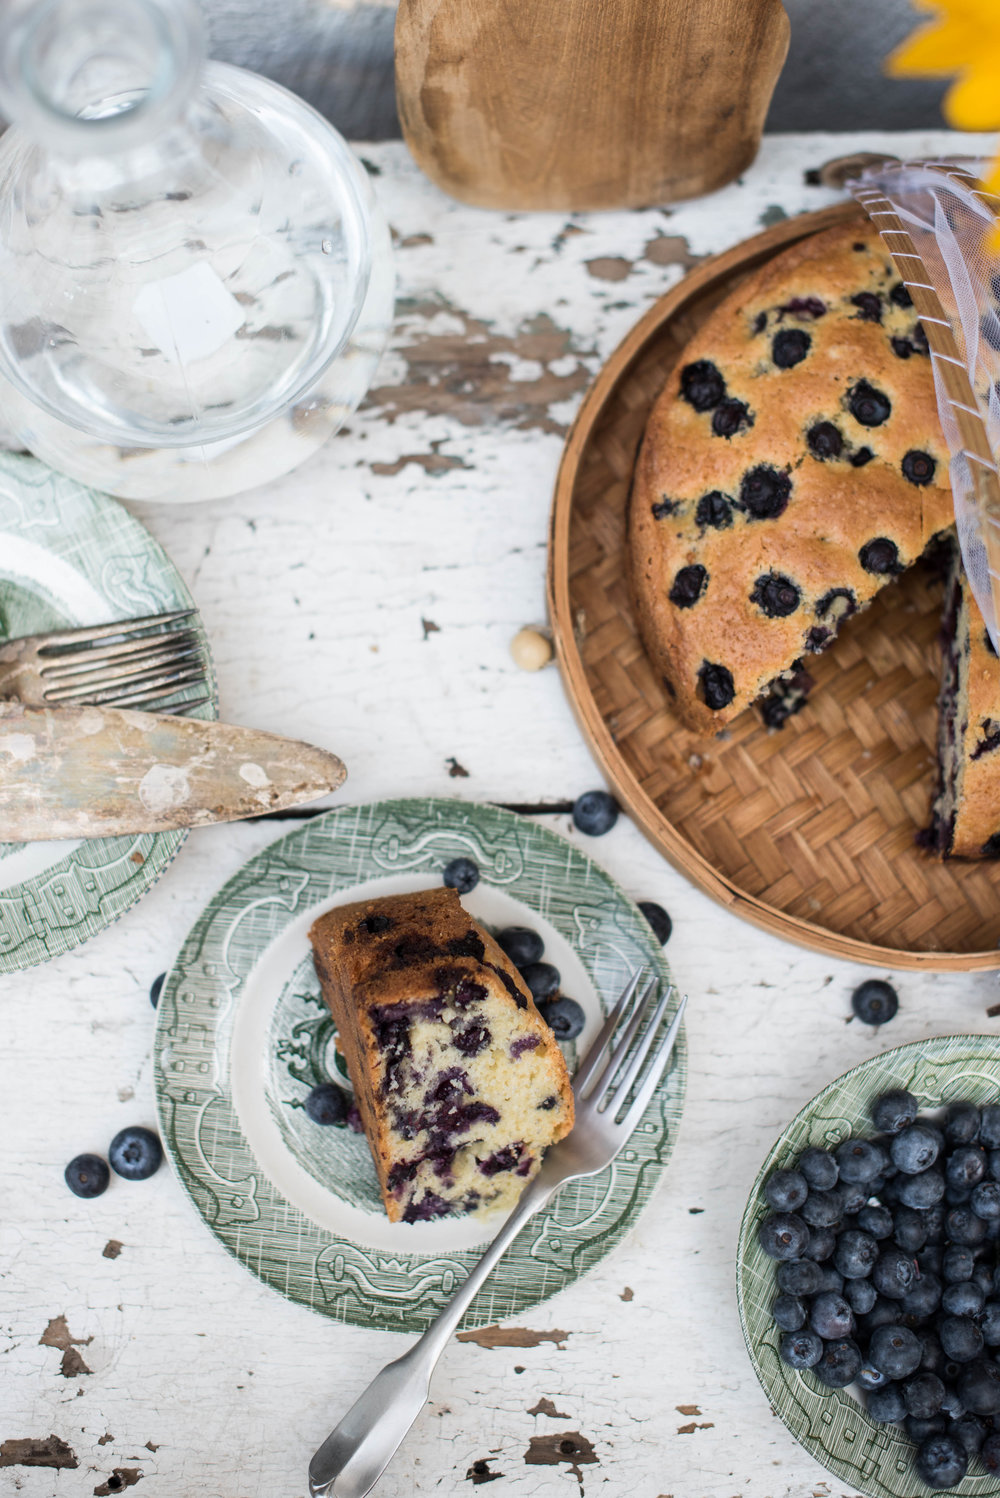 ROSE & IVY Journal At the Market Blueberries & Blueberry Olive Oil Cake